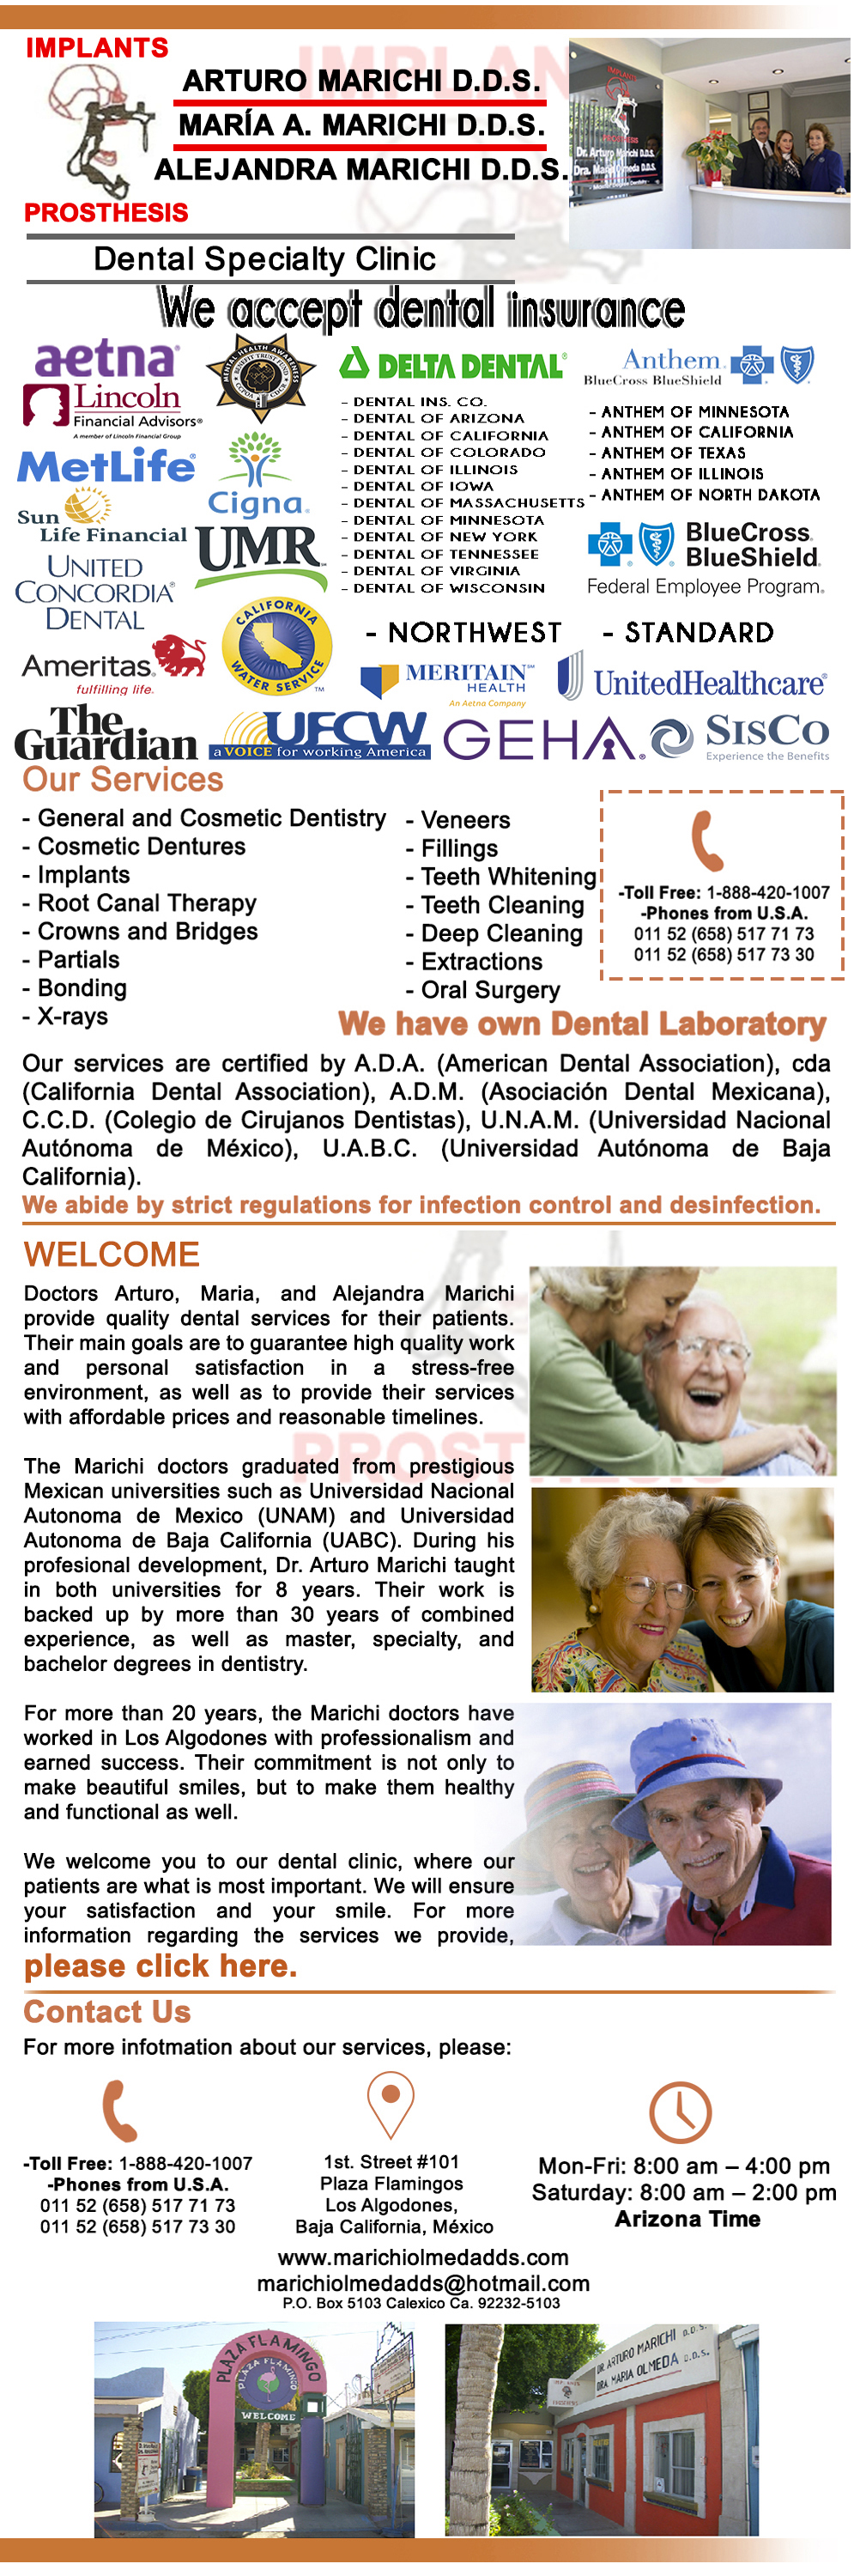 Dr. Arturo Marichi D.D.S. Dra. Maria Marichi D.D.S.  Dra. Alejandra Marichi D.D.S. in Algodones  in Algodones   Our Services General and Cosmetic Dentistry, Cosmetic Dentures, Implants,  Root Canal Therapy, Crowns and Bridges, Partials, Bonding, X-Ray,  Veneers, Fillings, Teeth Whitening, Teeth Cleaning, Deep Cleaning,  Extractions, Oral Surgery. We have own Dental Laboratory.               General Dentistry and Specialists We offer complete dental services including general dentistry, cosmetic dentistry, periodontics, endodontics, orthodontics and dental implants. Bridges °X-Rays °Porcelain Veneers °Metal Crowns °Dental Bonding °Deep Cleaning °Denture Repair °Traditional Acrylic Dentures °Prescriptions °Root Canals °Metal Bridges °White Fillings °Root Canal Therapy Relines (Hard or Soft) °General Oral Surgeries °Porcelain Crowns °Flexible Partials °Composite Posts °Teeth Whitening °Extractions °Flexible Parials Implants °Porcelain Veneers °Wisdom Tooth Extractions °Metal Posts °Traditional Cleaning °Metal/Acrylic Partials °Immediate Upper and Lower Dentures (Alveoplasty)    Our Services General and Cosmetic Dentistry, Cosmetic Dentures, Implants,  Root Canal Therapy, Crowns and Bridges, Partials, Bonding, X-Ray,  Veneers, Fillings, Teeth Whitening, Teeth Cleaning, Deep Cleaning,  Extractions, Oral Surgery. We have own Dental Laboratory. Dentist